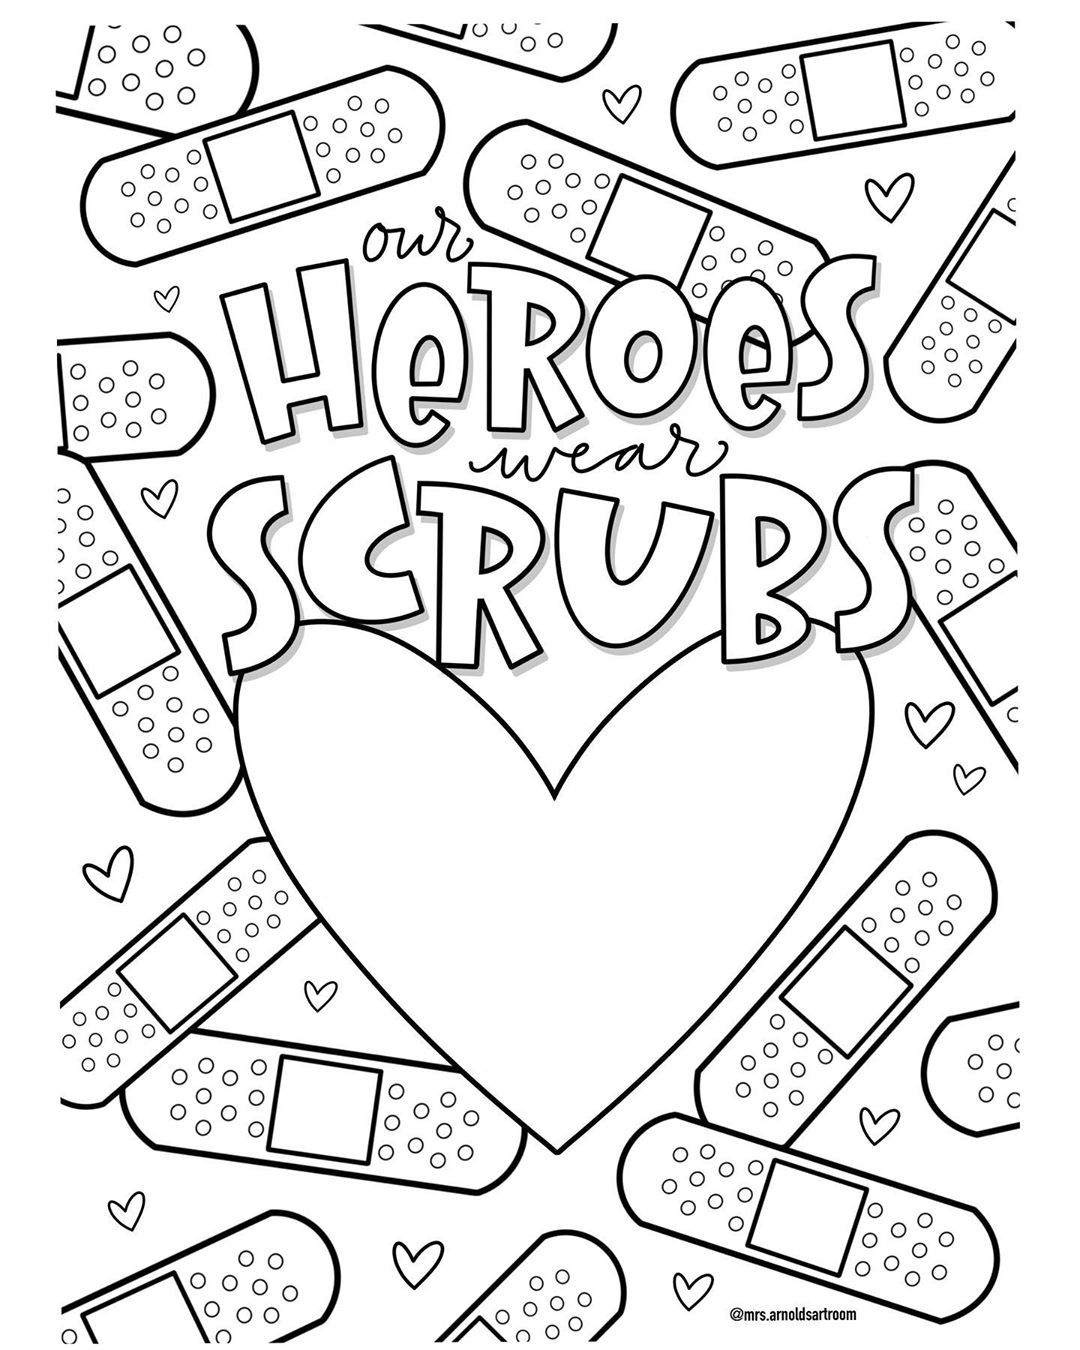 Jessie Arnold S Instagram Post Happy Internationalnursesday If You Ve Ever Been In The Hospital For Any Coloring Pages Instagram Posts Calligraphy Design